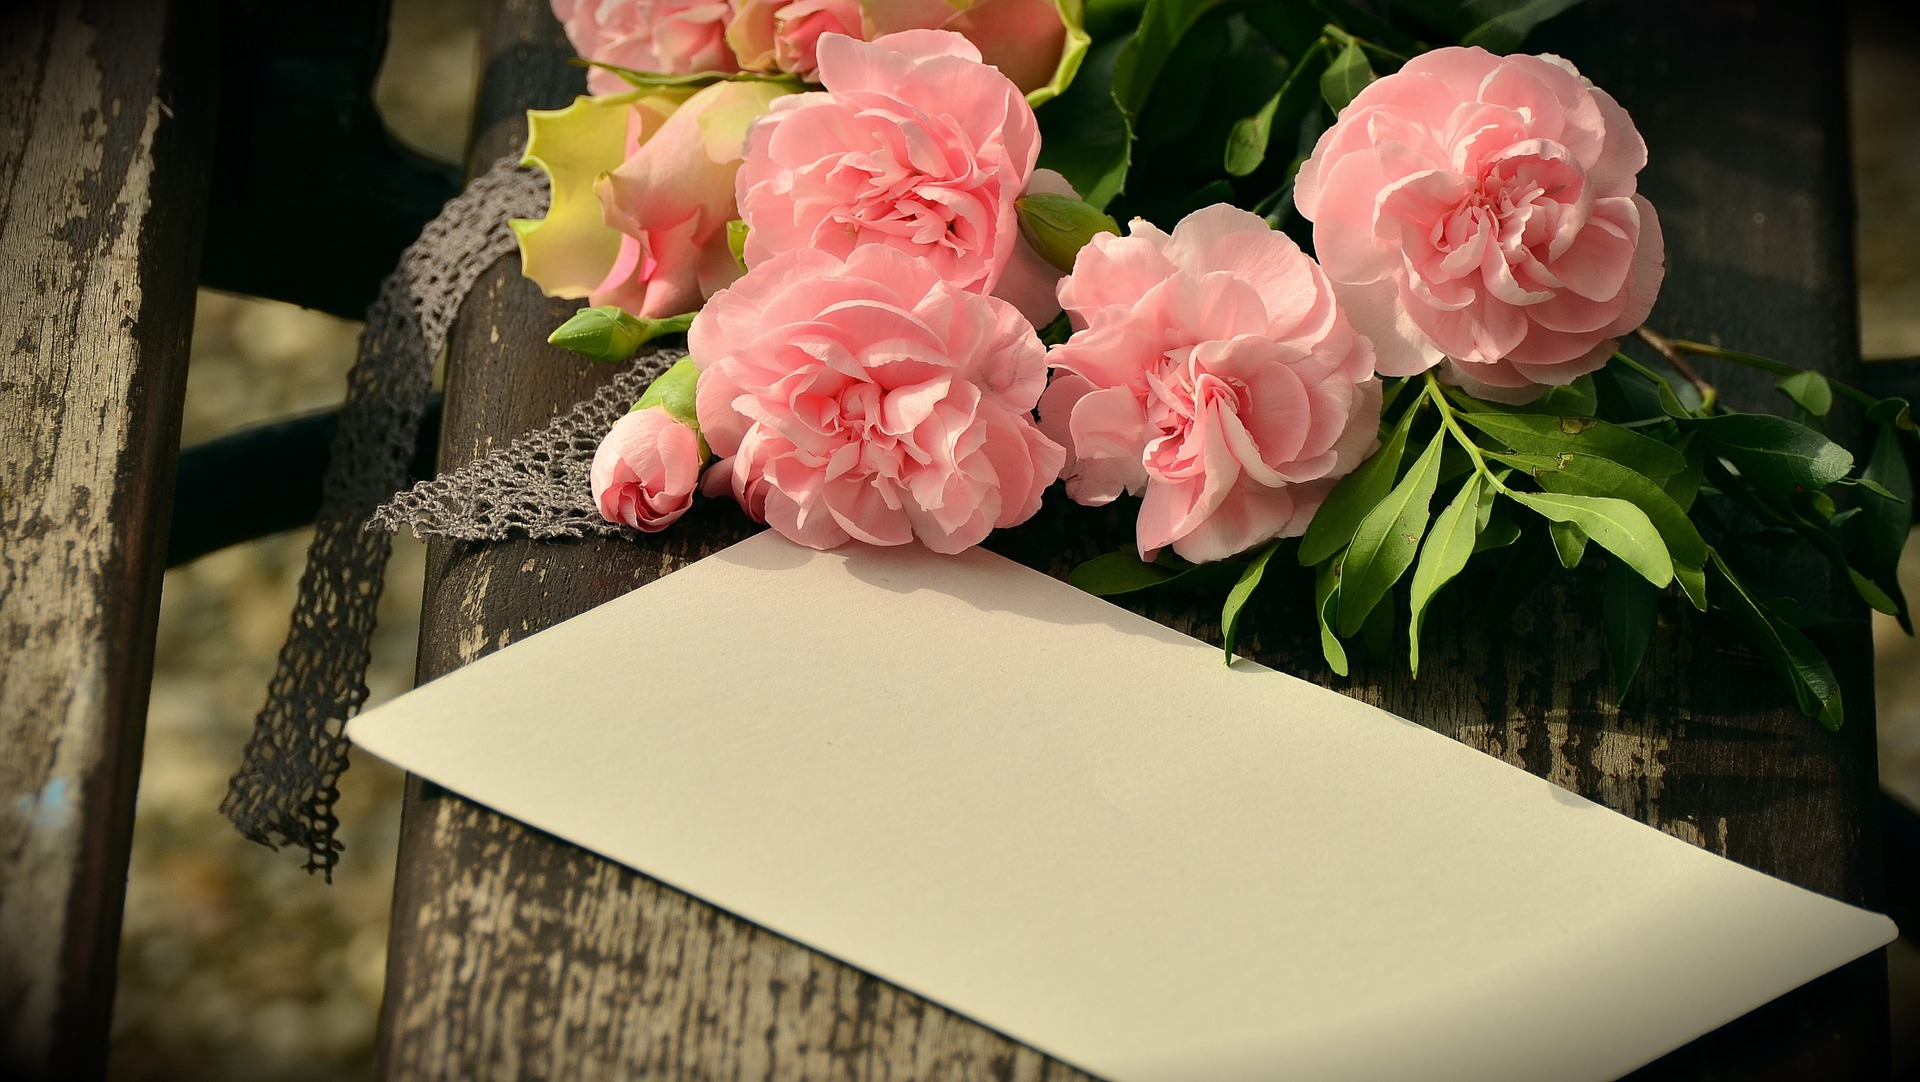 How to Write a Condolence Note: 5 Tips